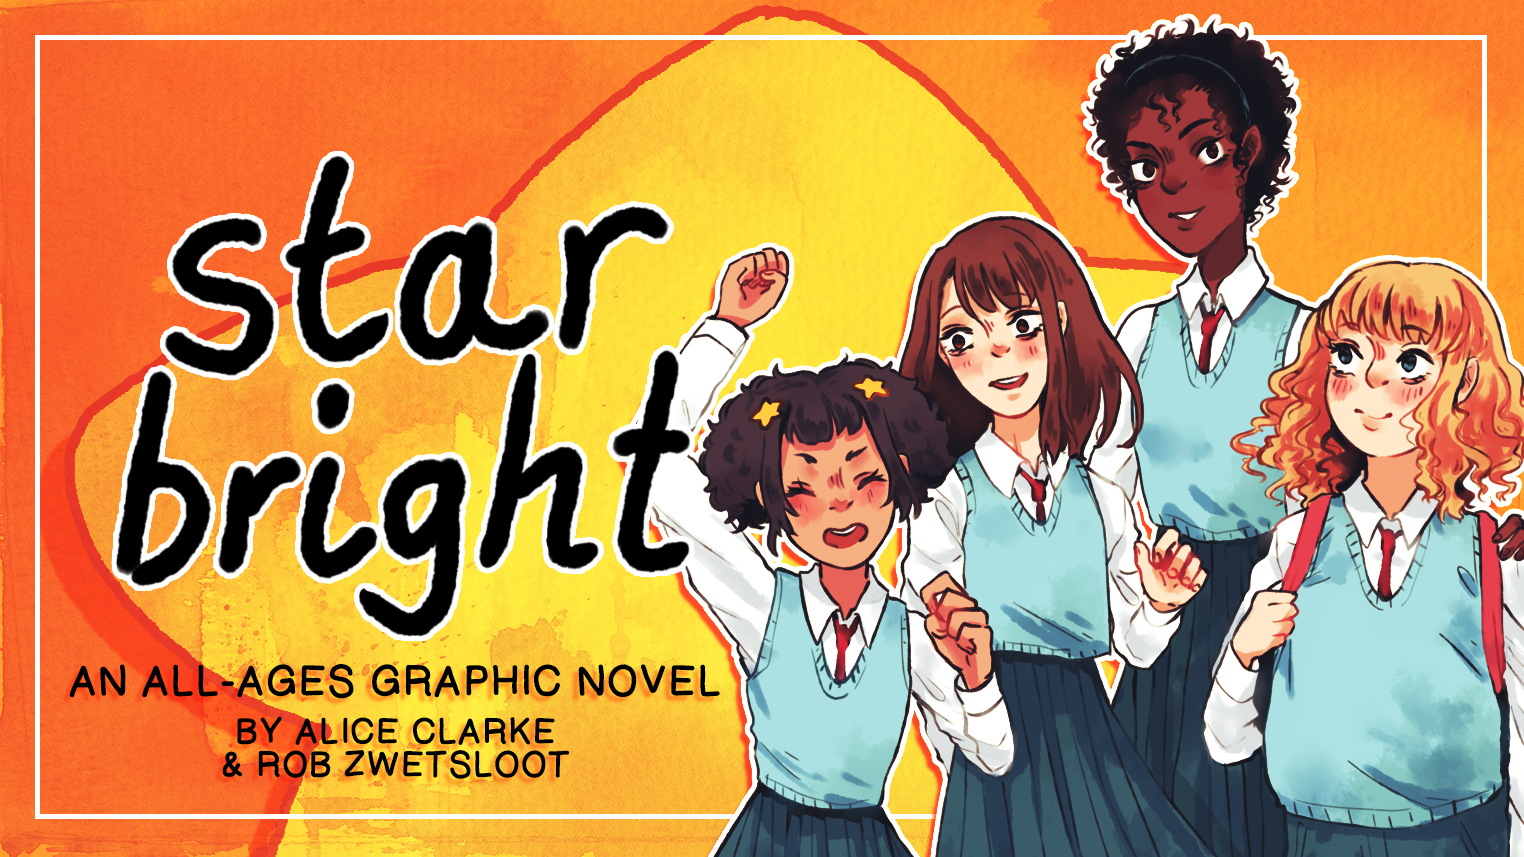 Star Bright: an all-ages LGBT comic